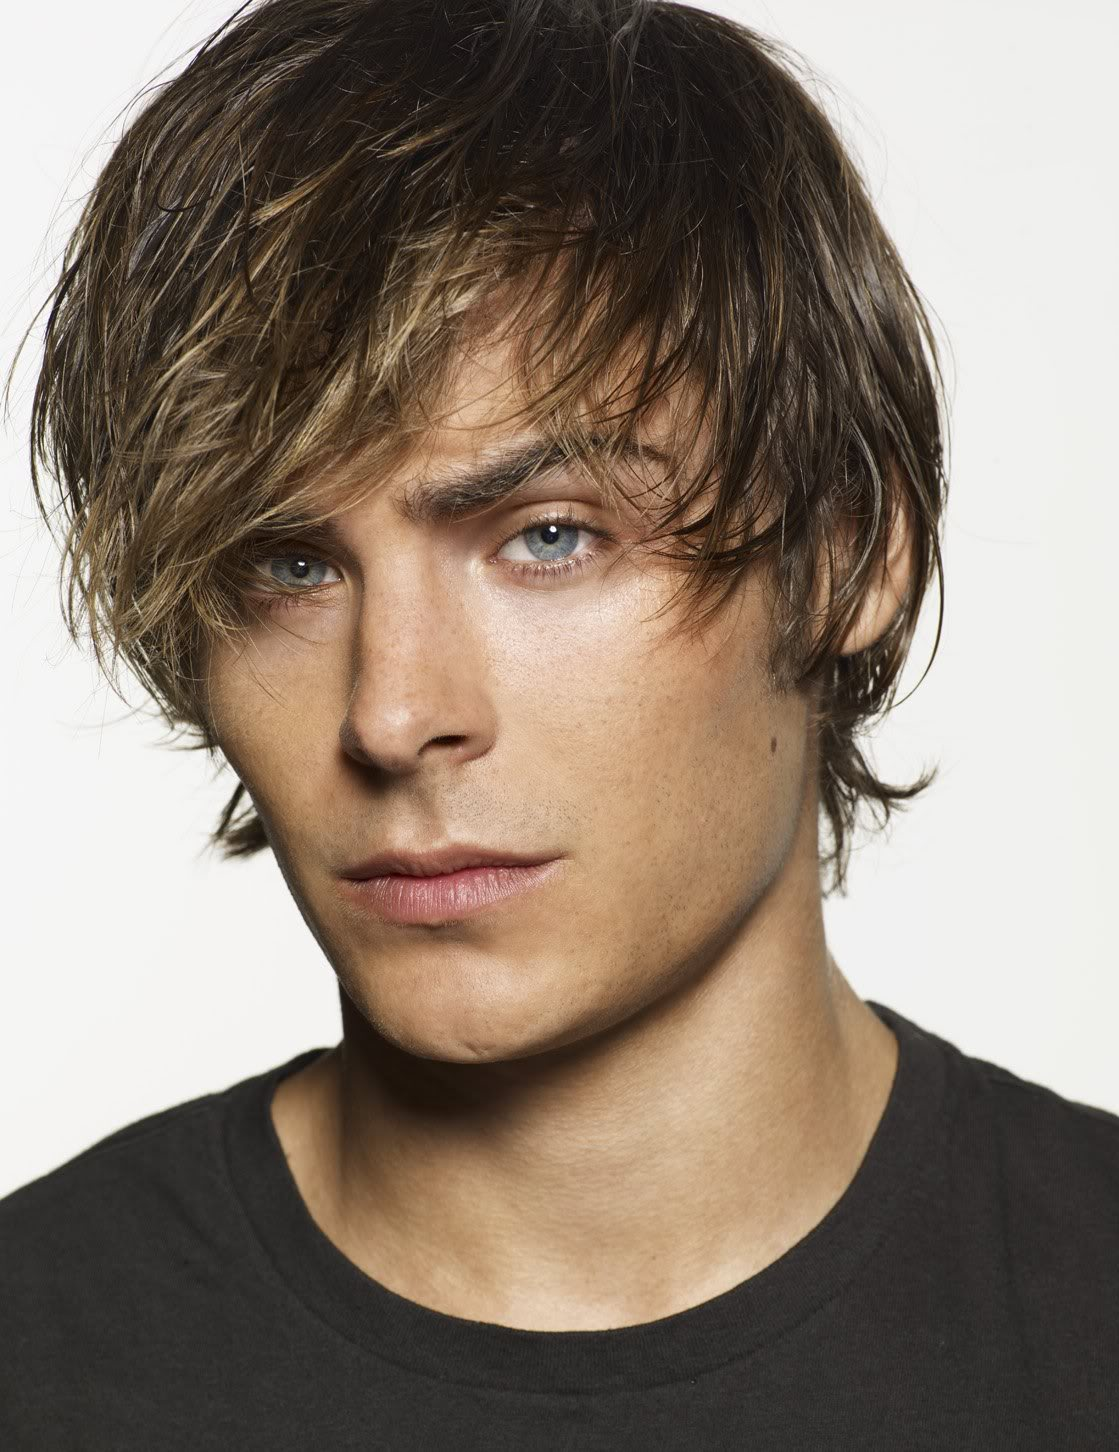 Shaggy Hairstyles for Teen Boys_01